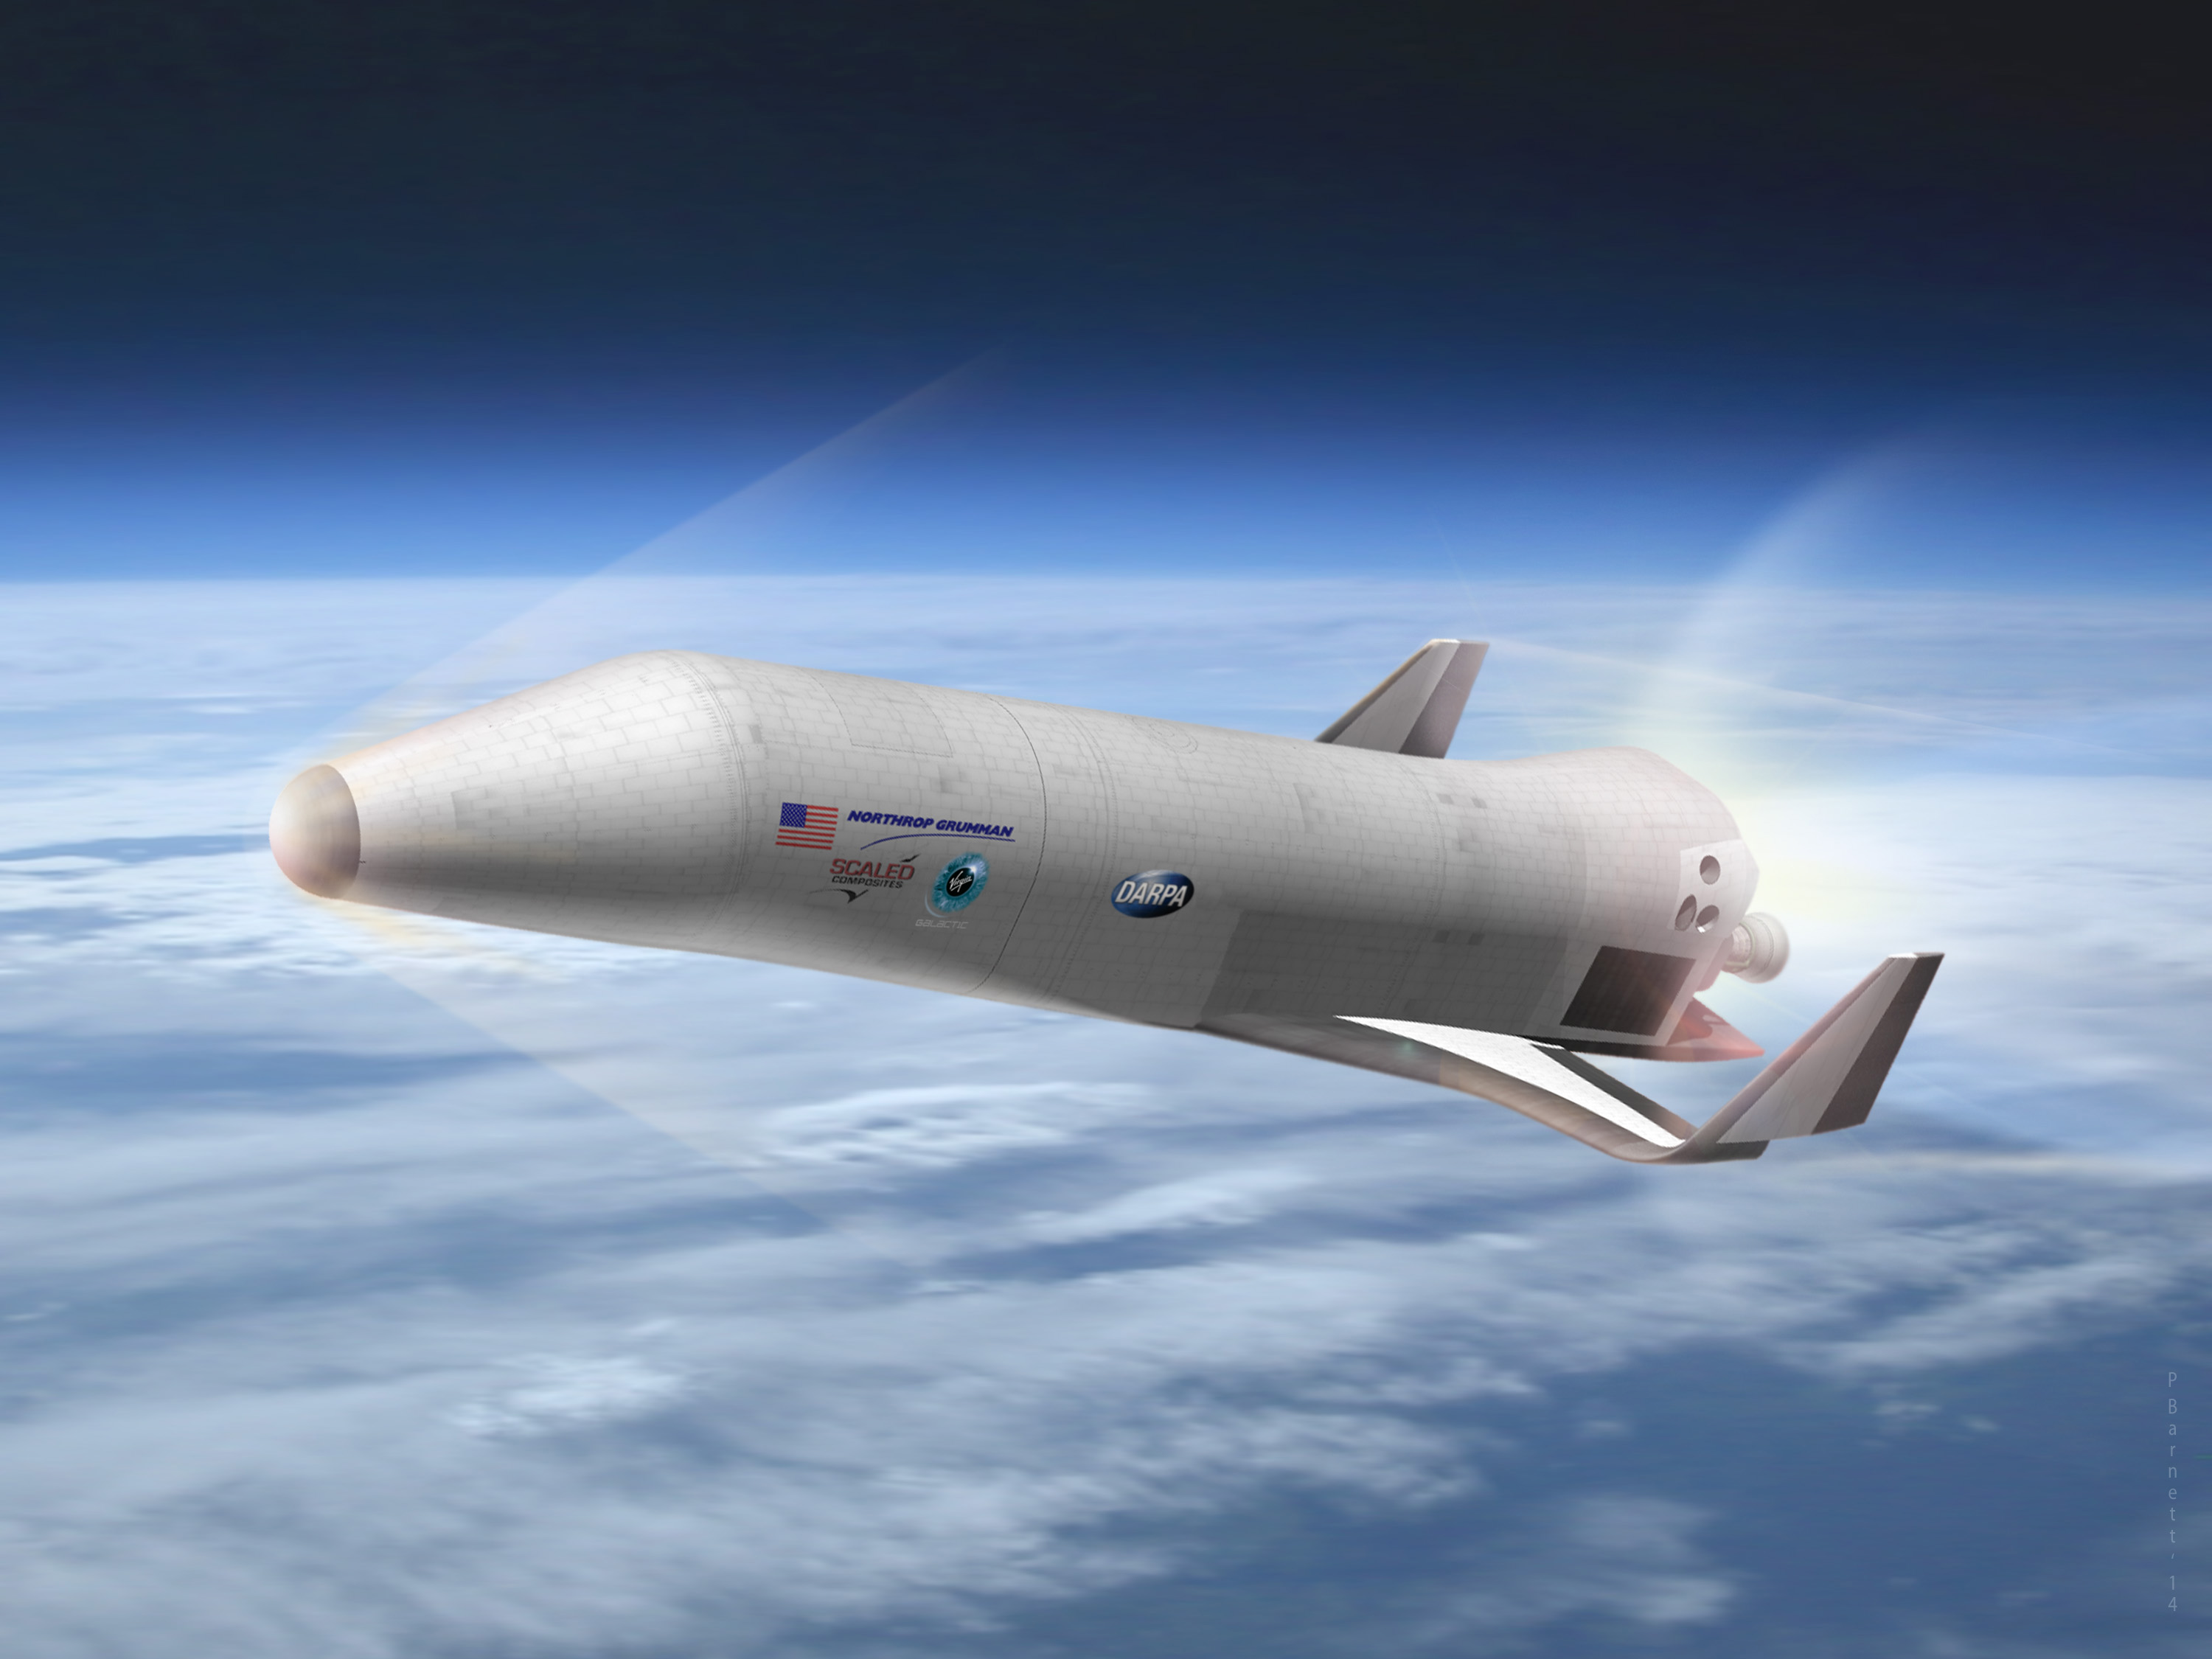 XS-1: DARPA's Experimental Spaceplane